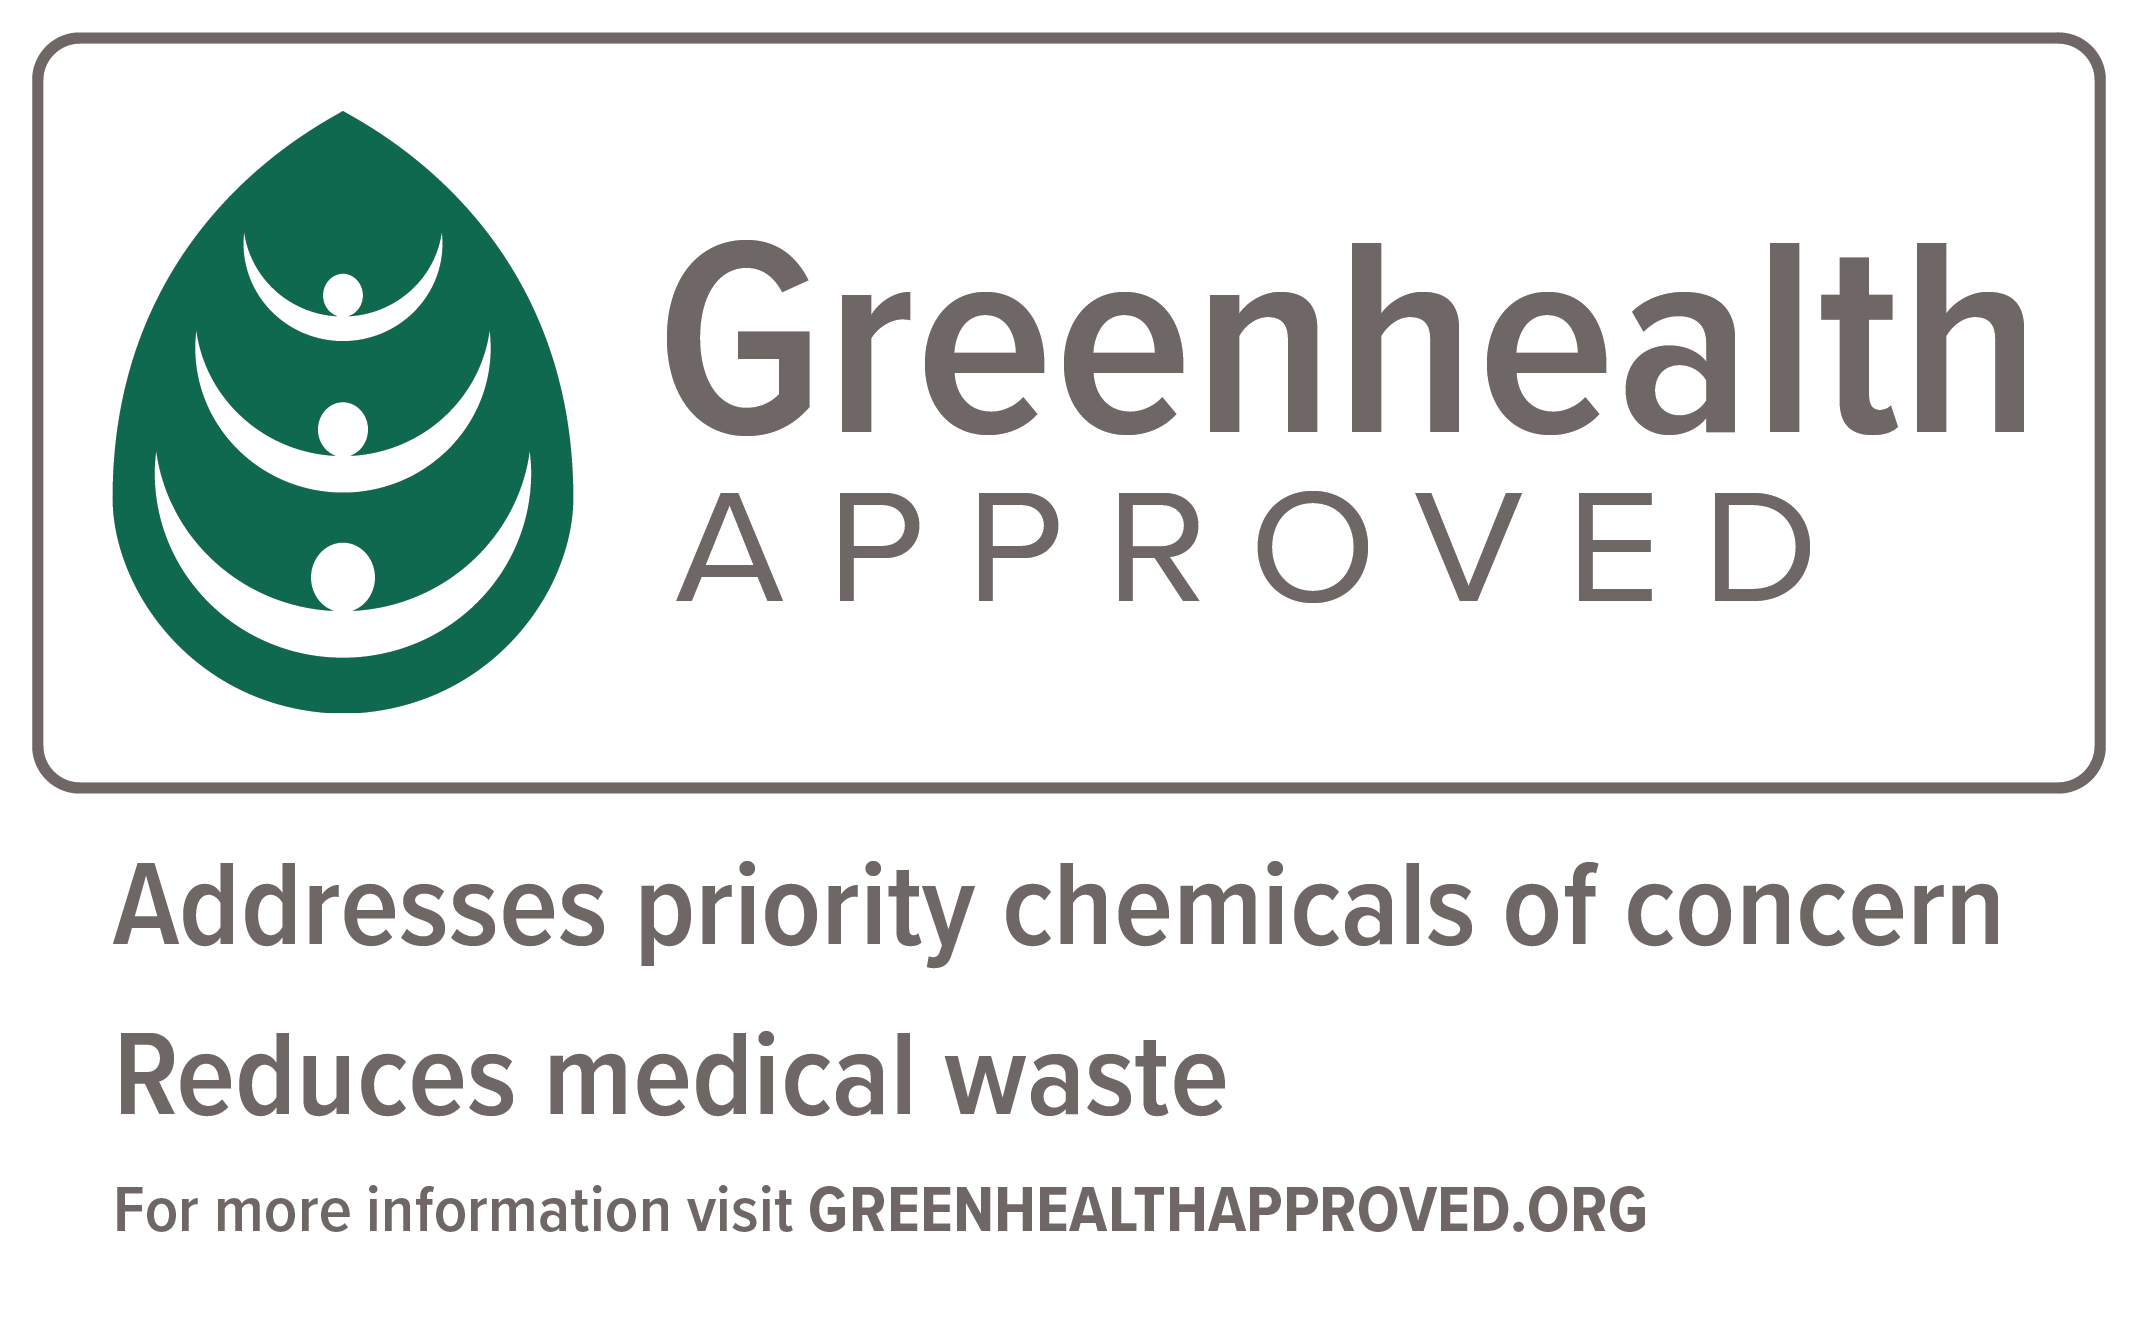 Greenhealth Approved logo